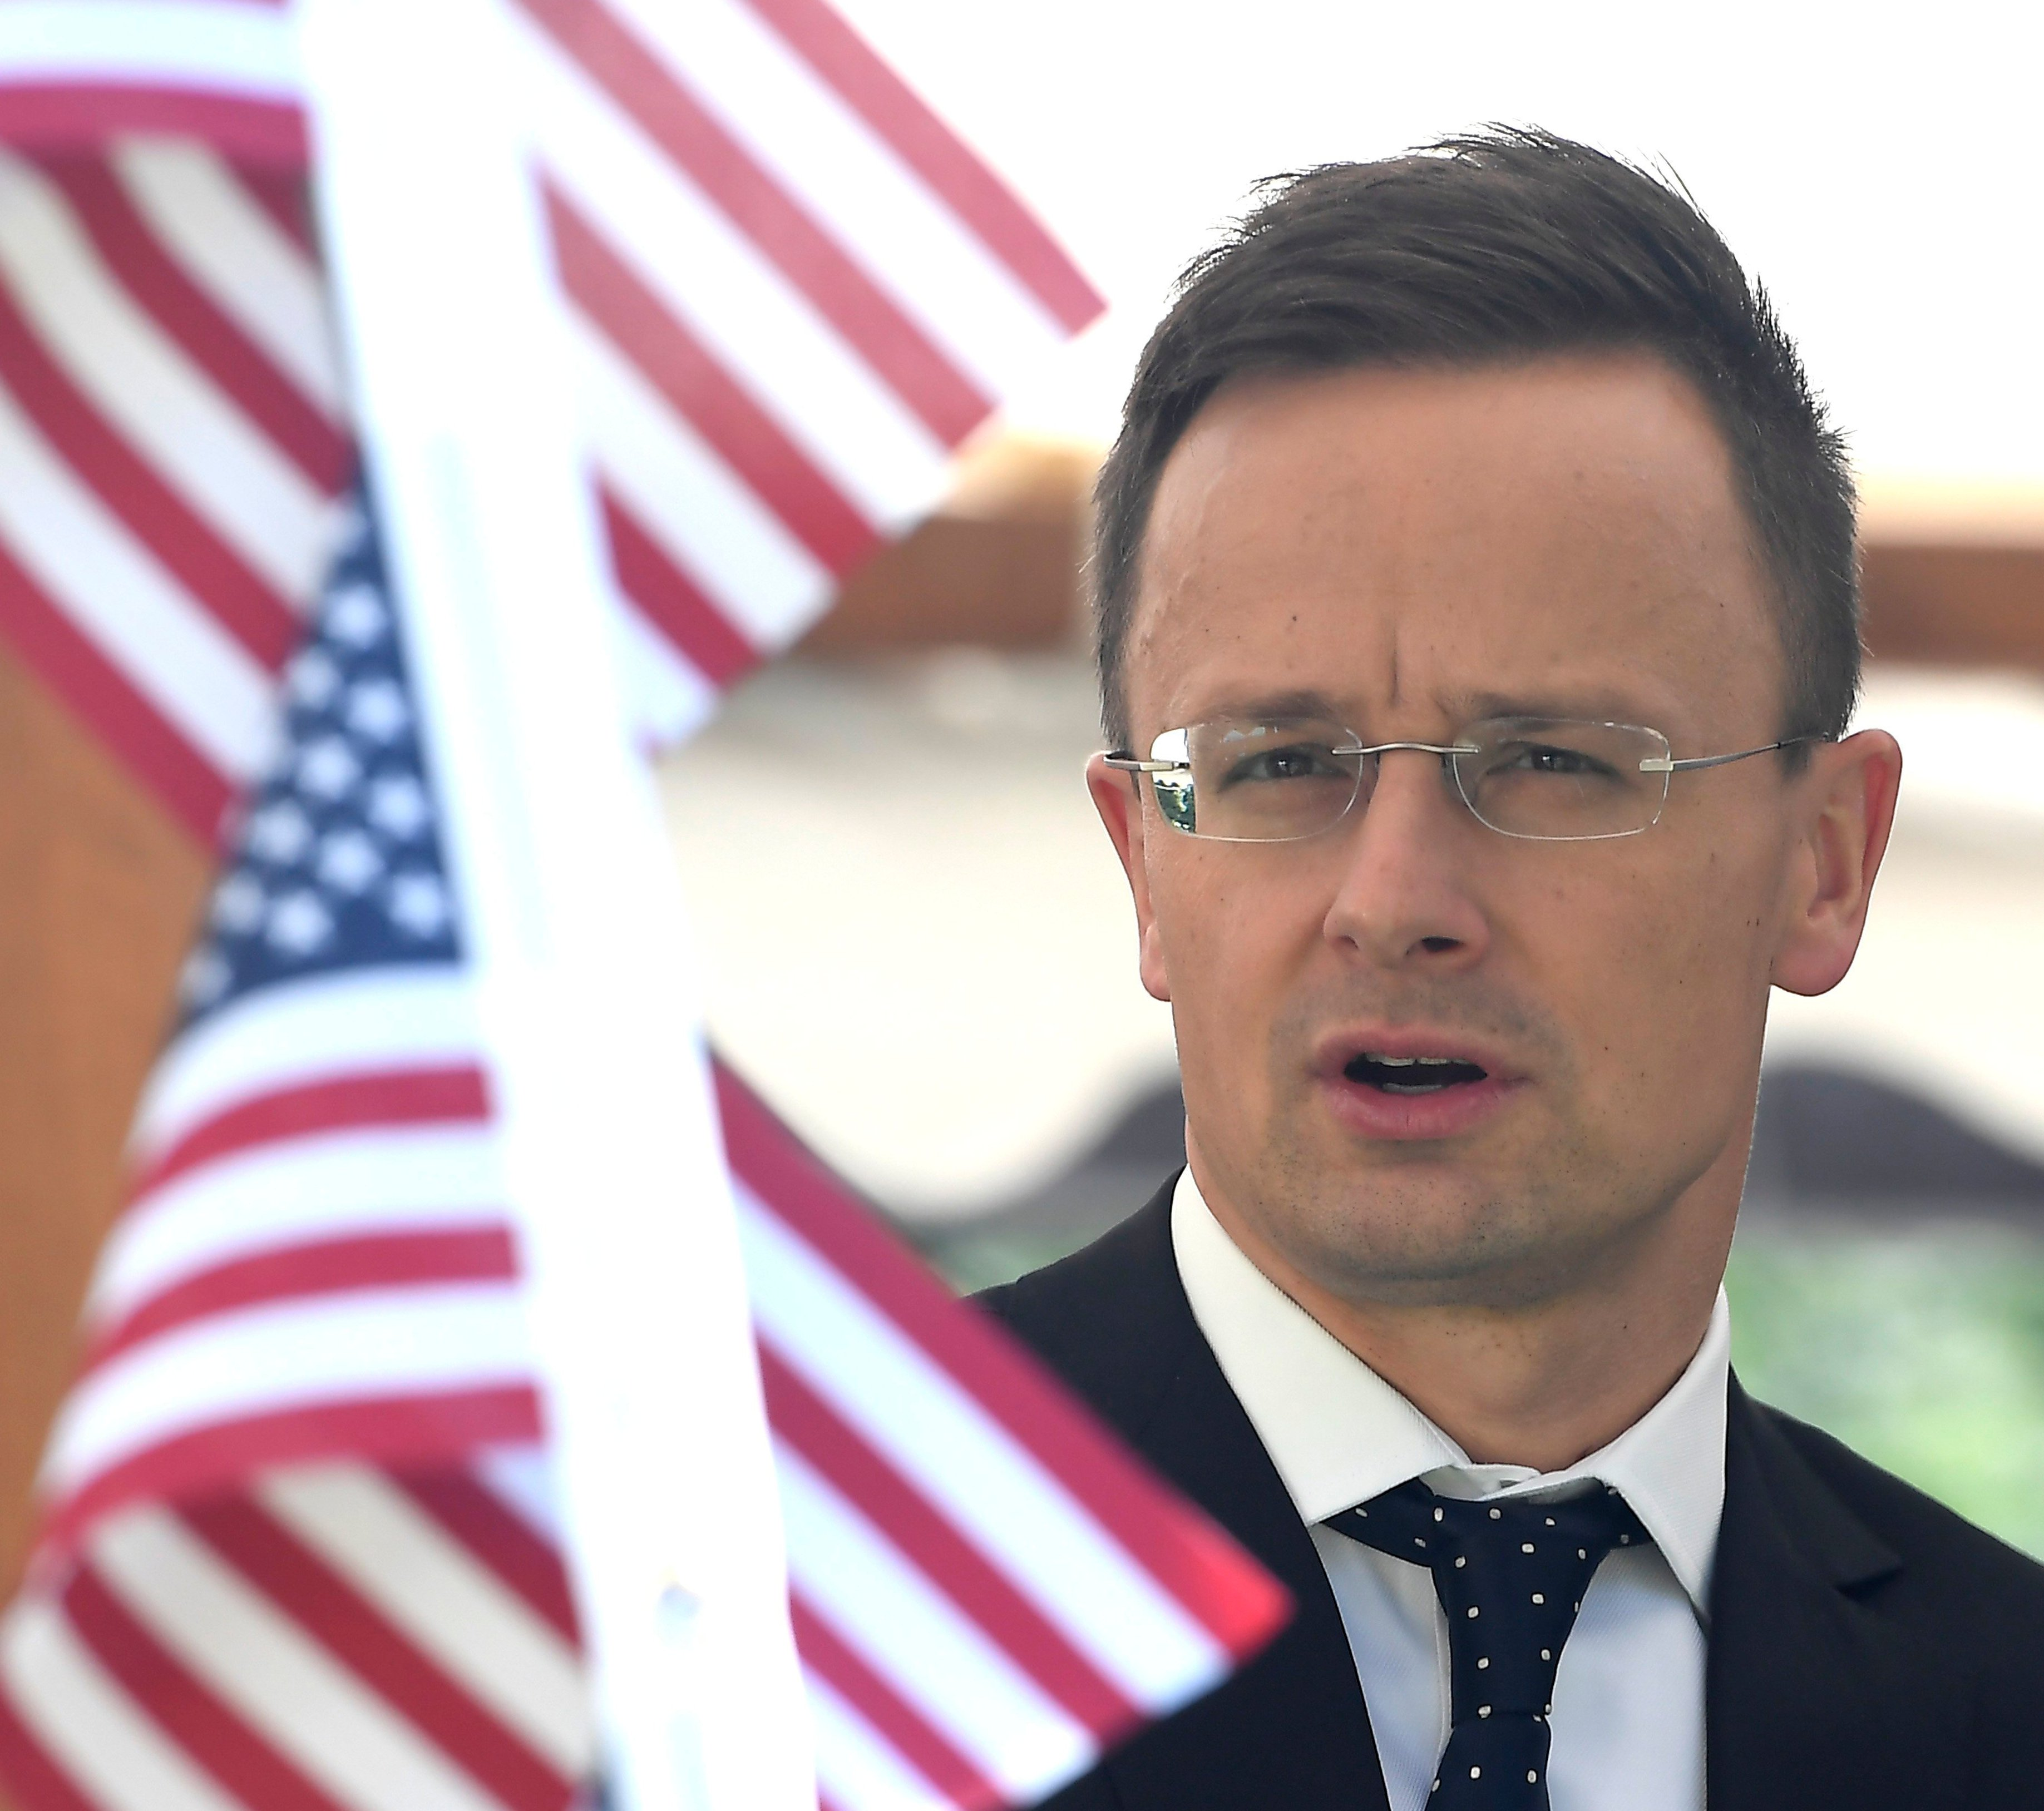 Revival Of US-Hungary Relations Expected